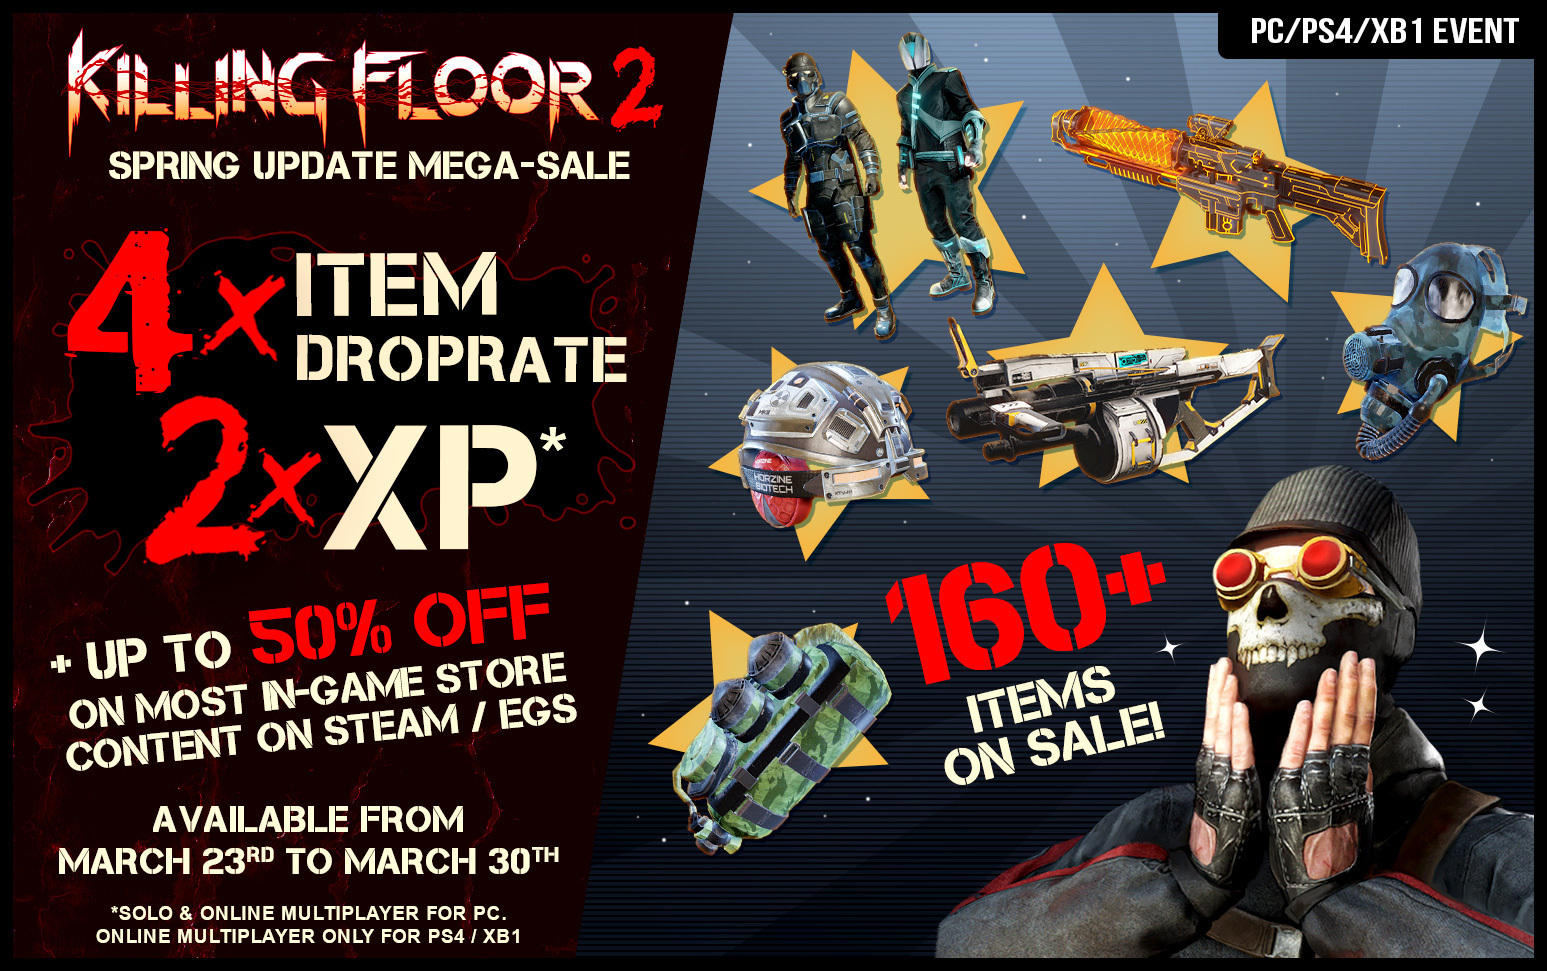 In Game Sale, increased XP, and increased drops!